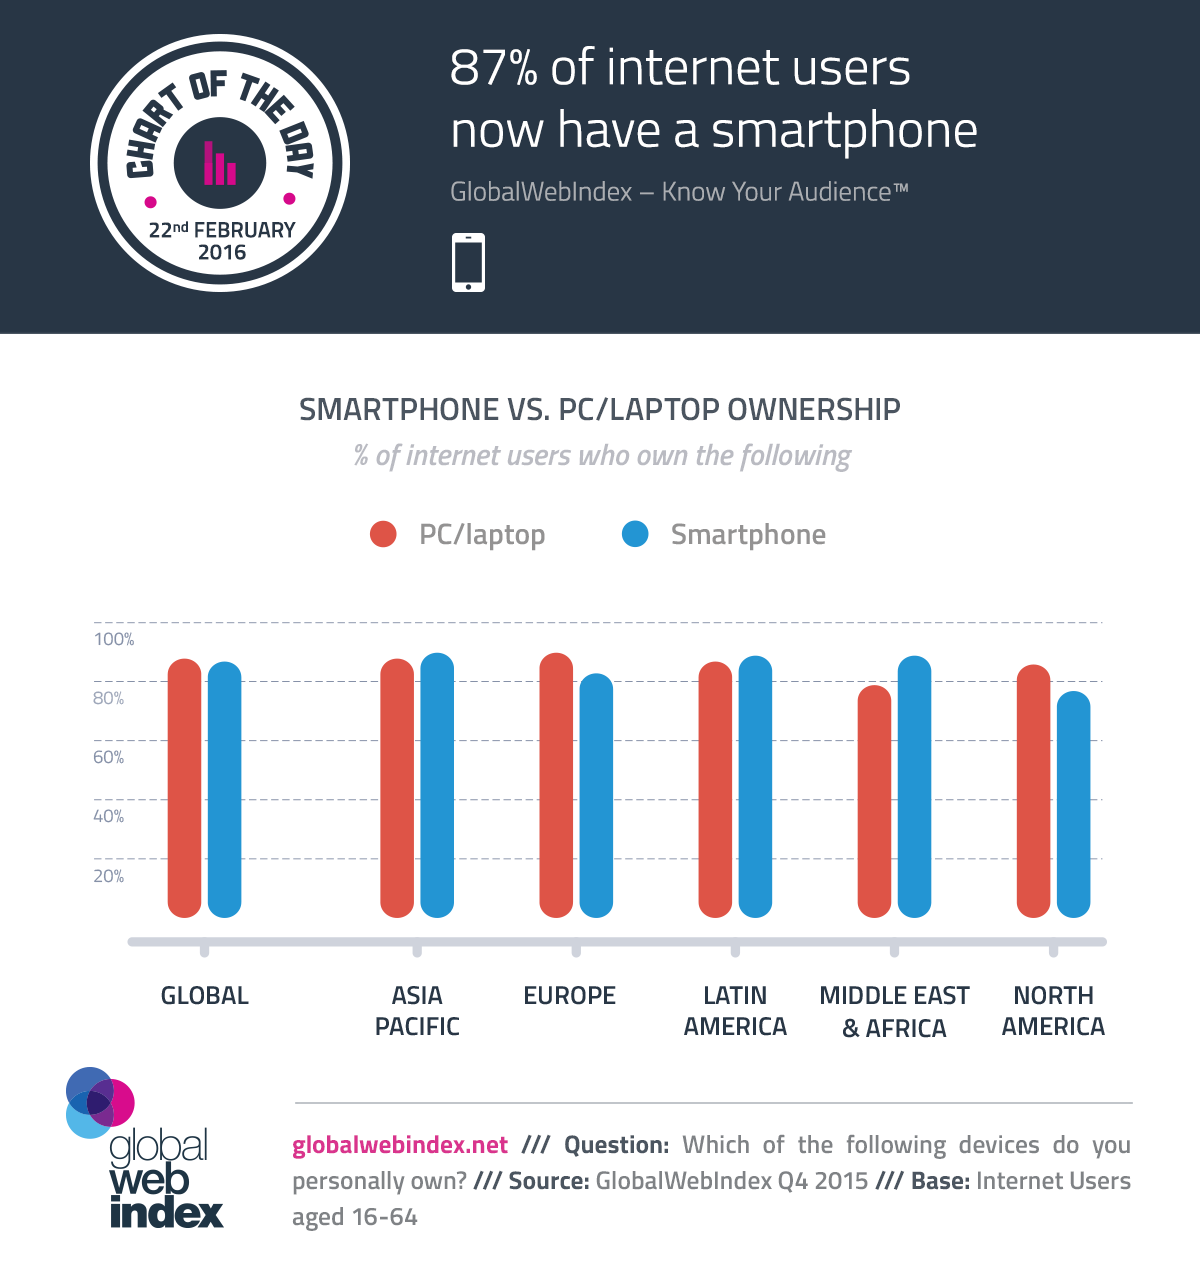 COTD-Charts-22-Feb-2016-87-of-internet-users-now-have-a-smartphone.png